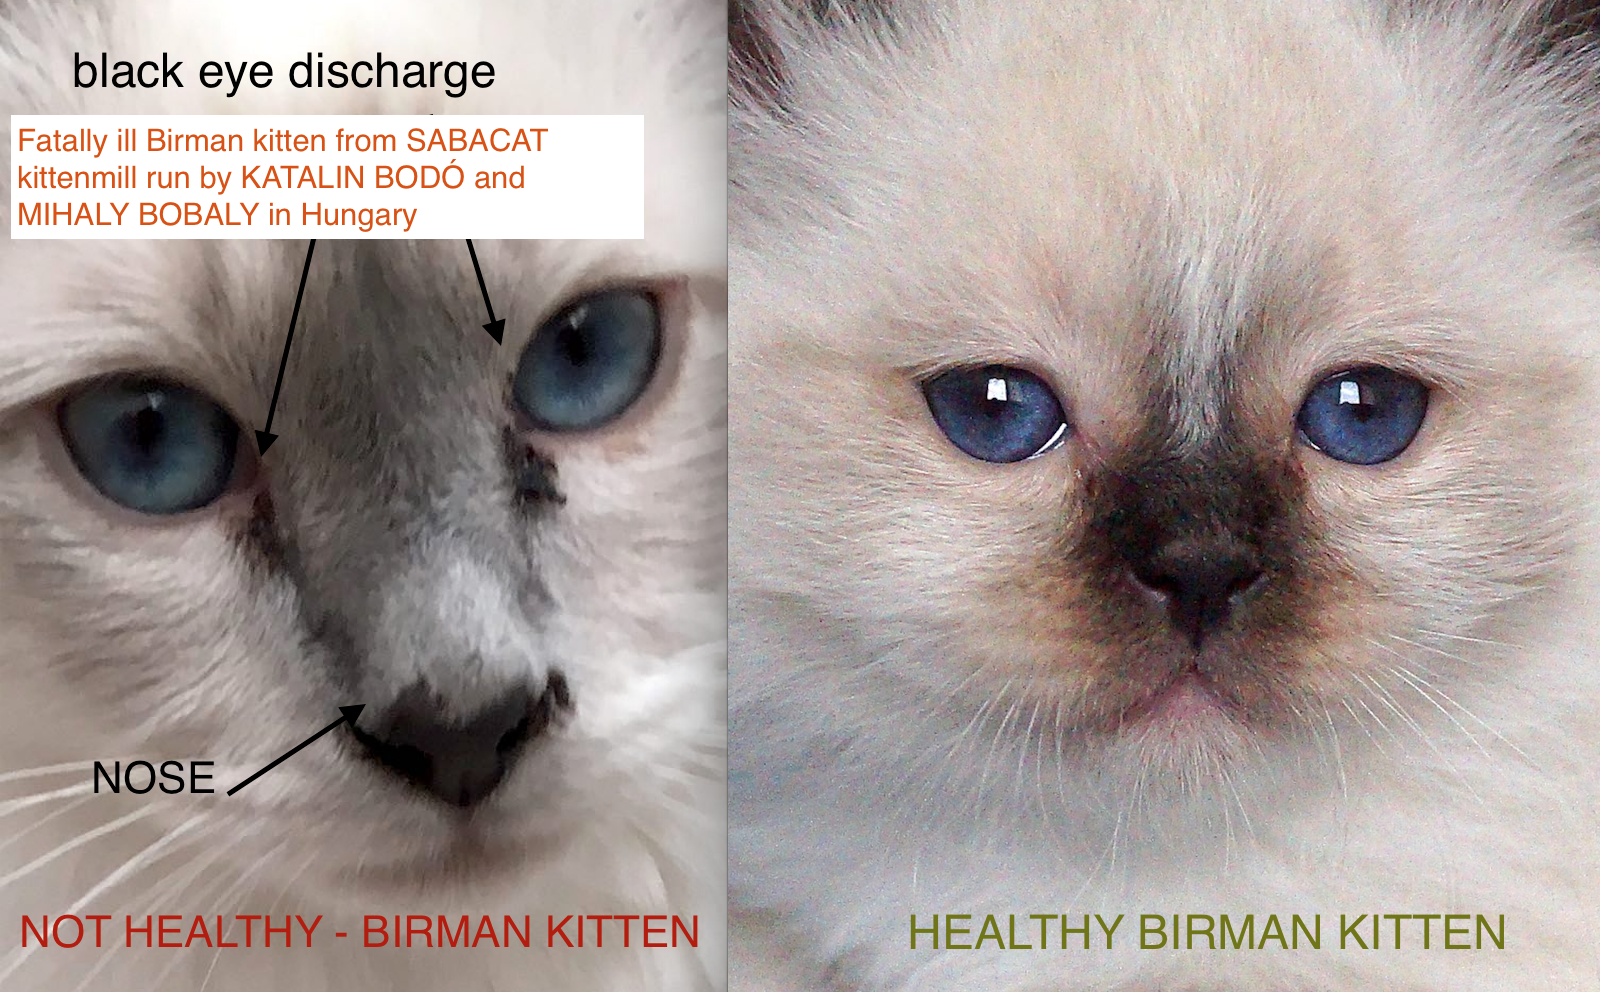 birman breed is very special one ️ Watch very well the